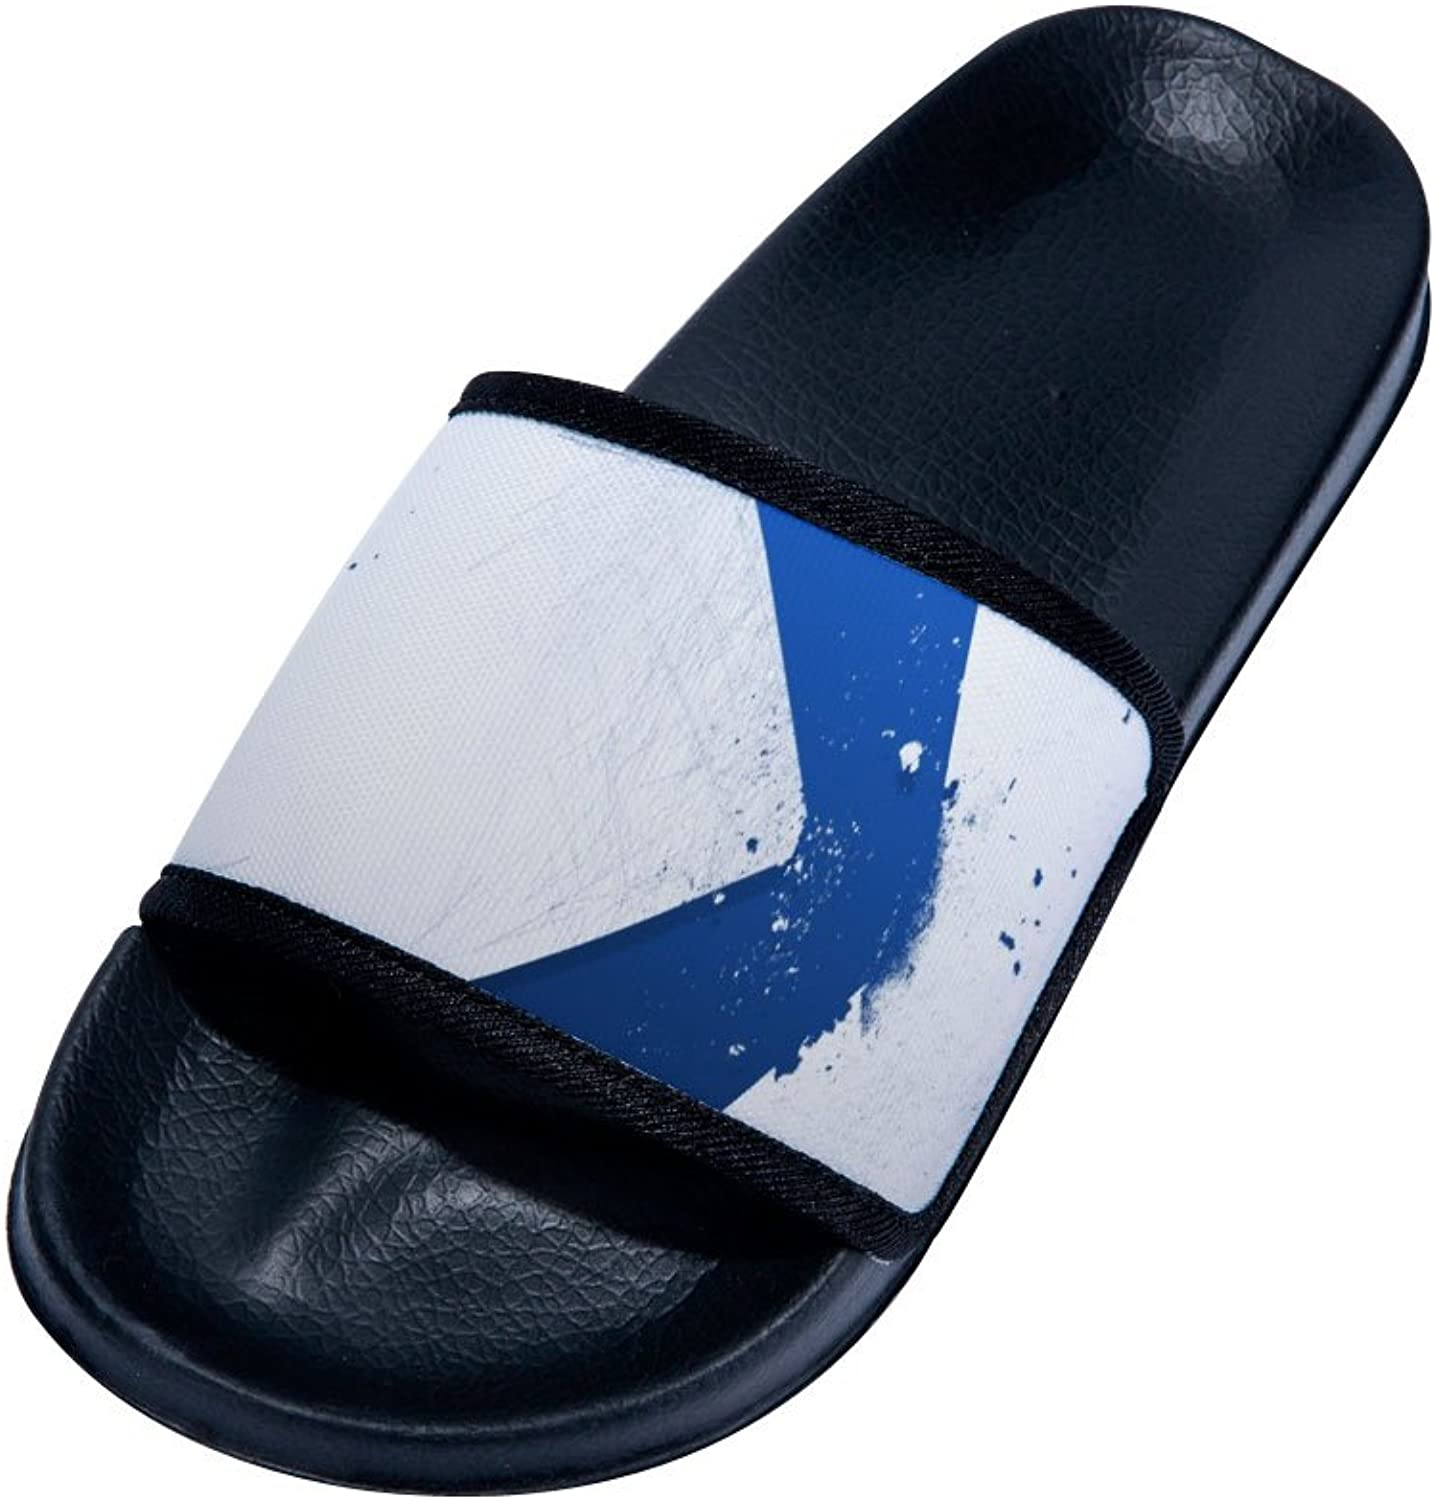 bluee-White Simple Graffiti Couple Quick-Drying Non-Slip Slippers